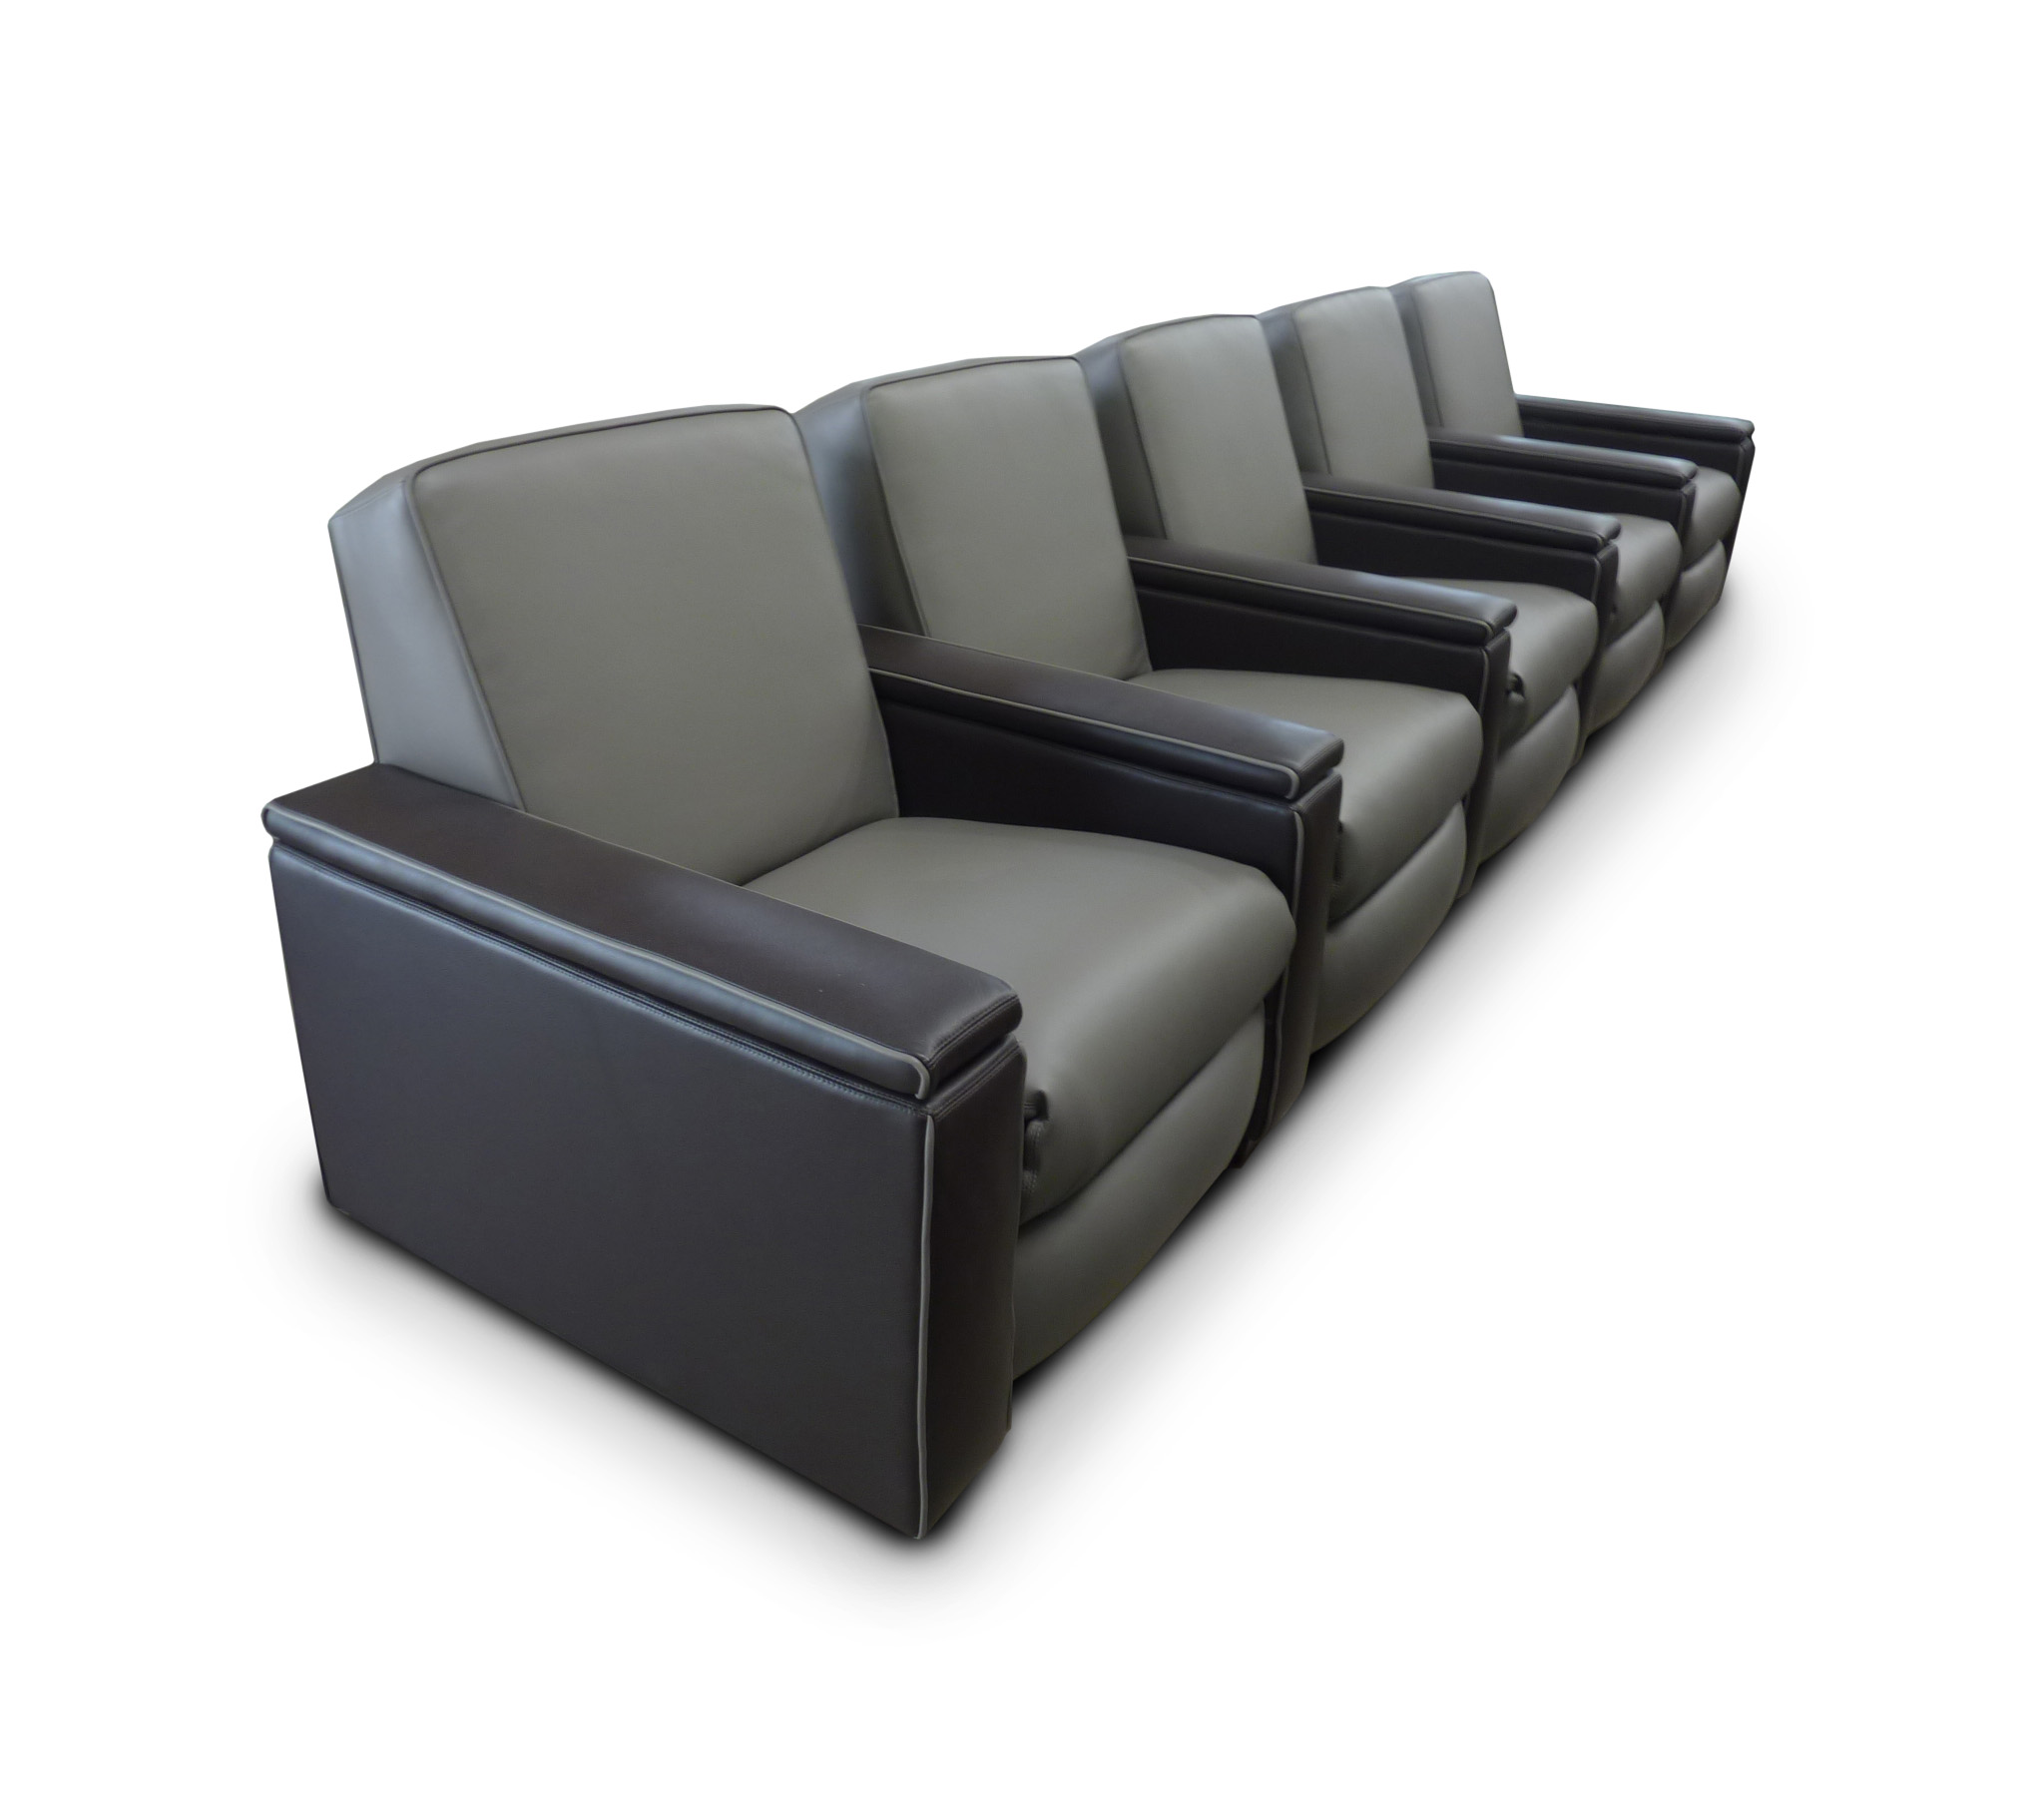 Common Arm - Fully Upholstered